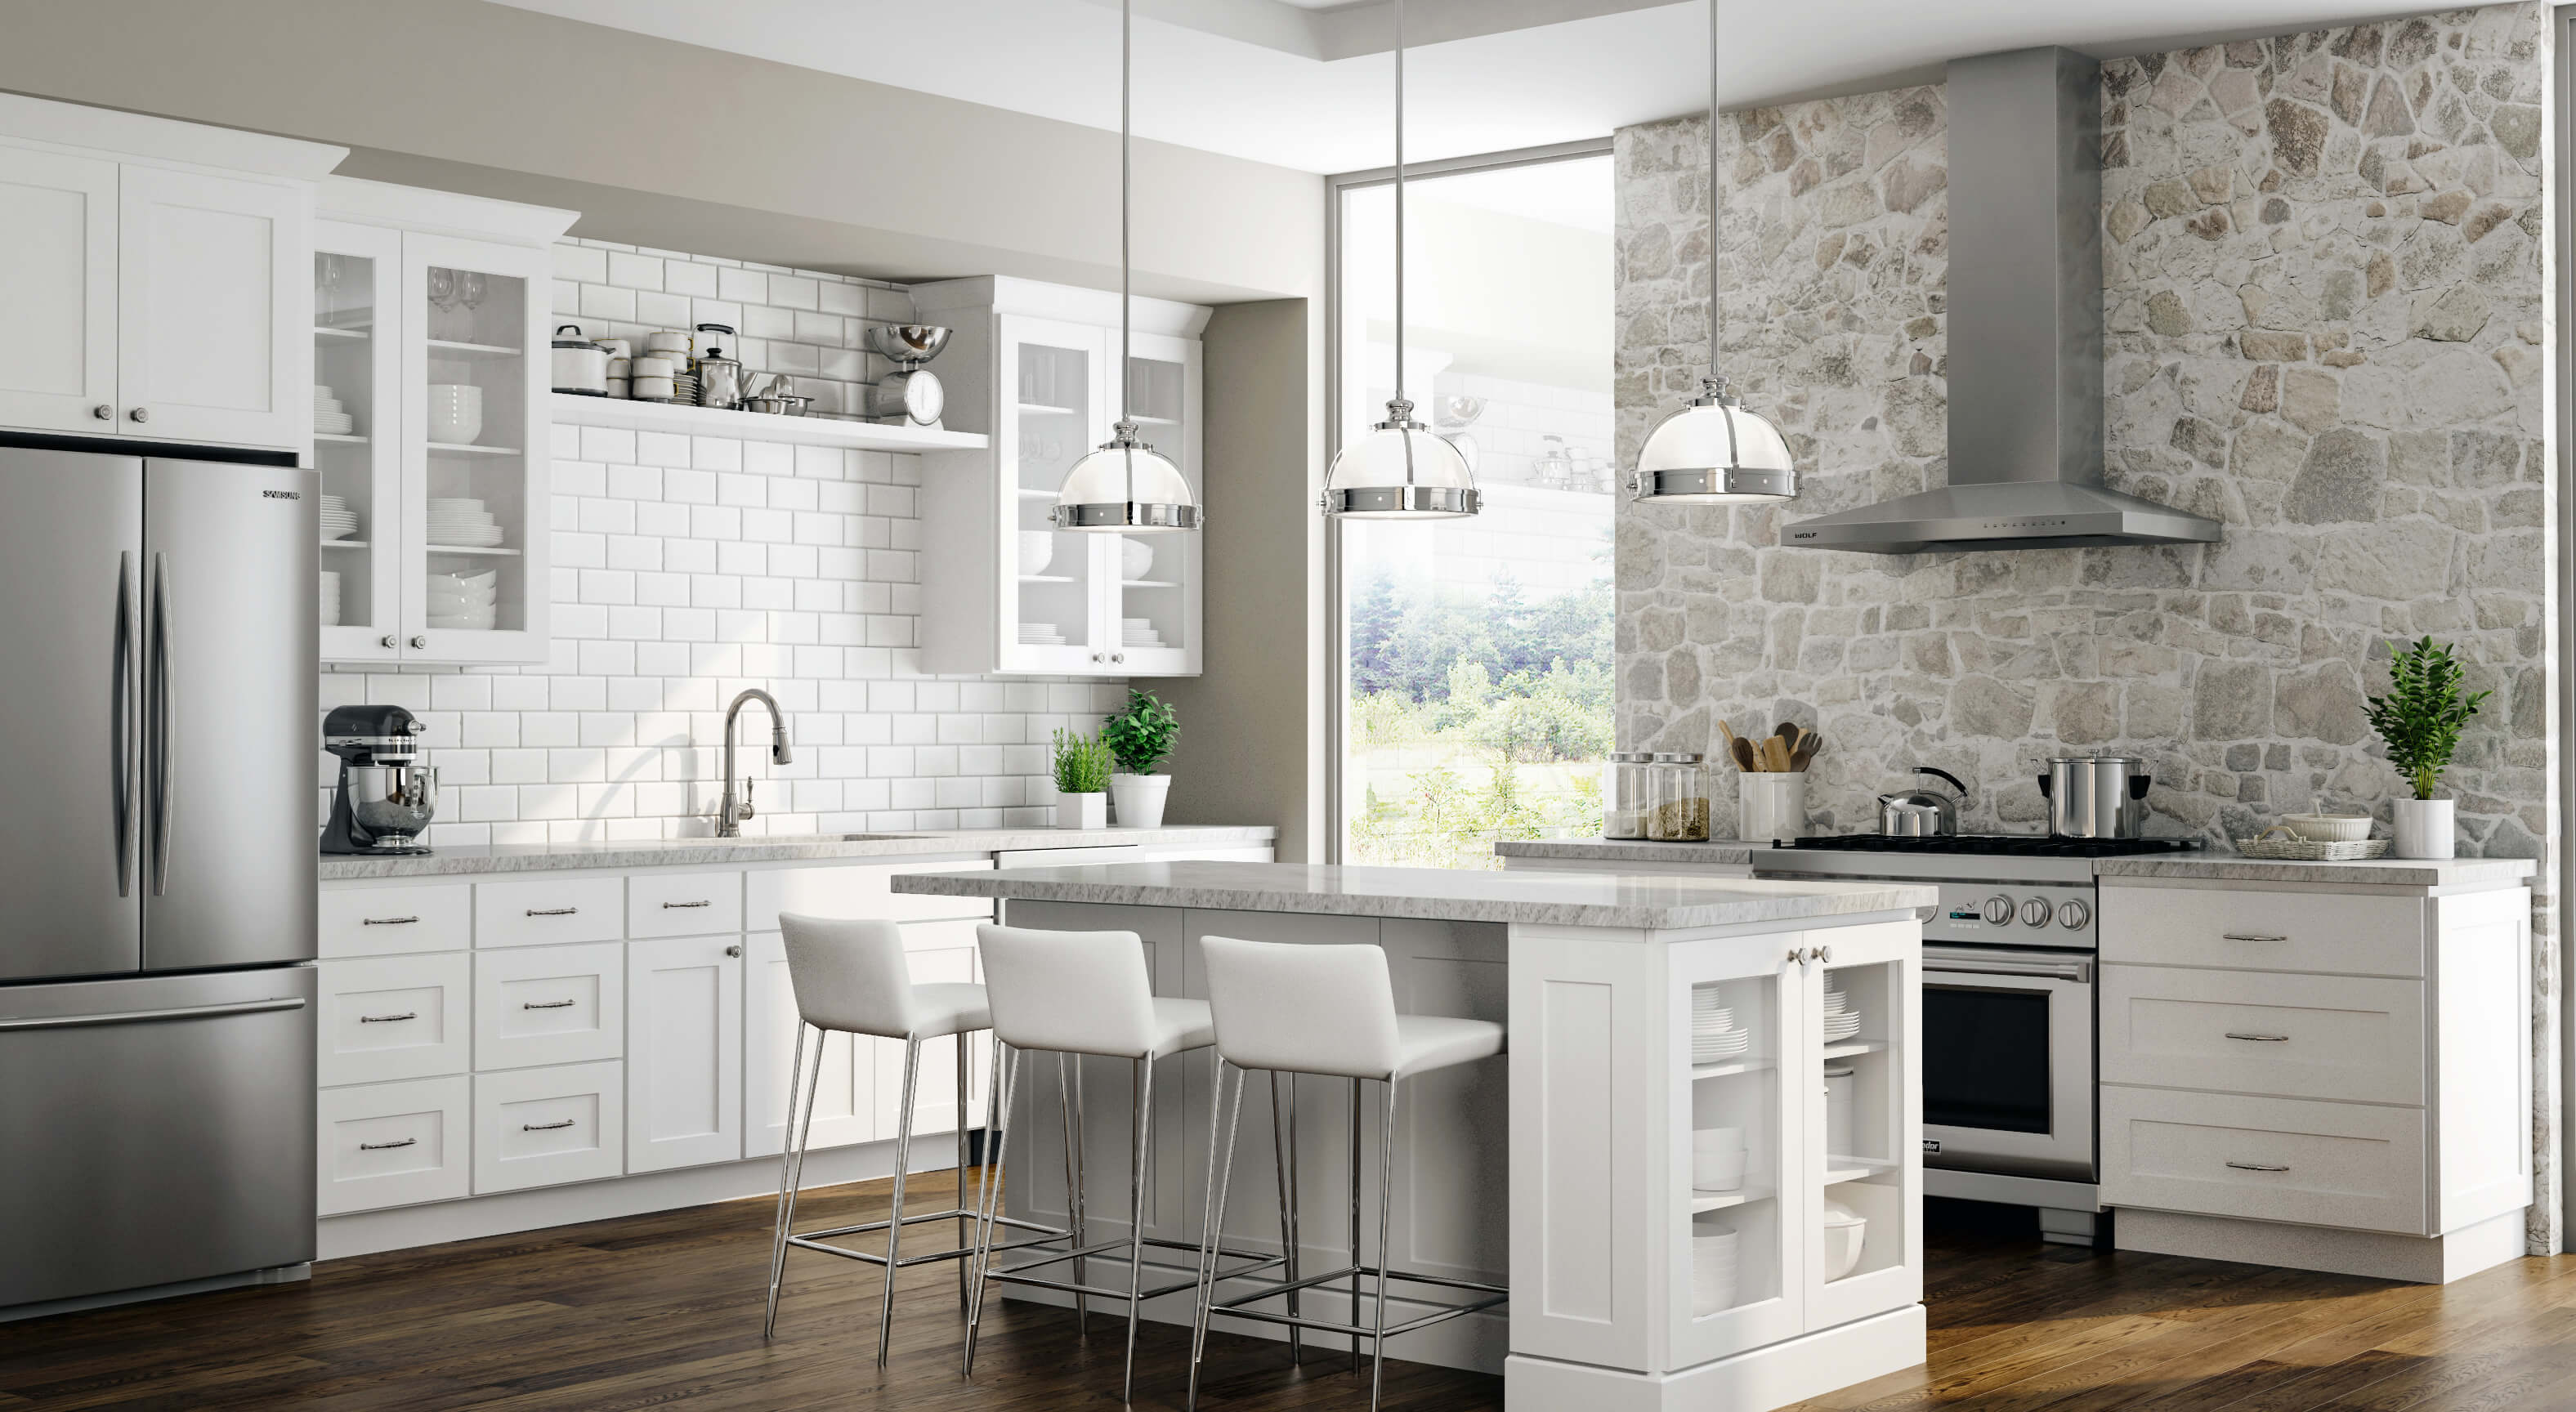 Beautiful kitchen with ready to assemble Dover shaker cabinets